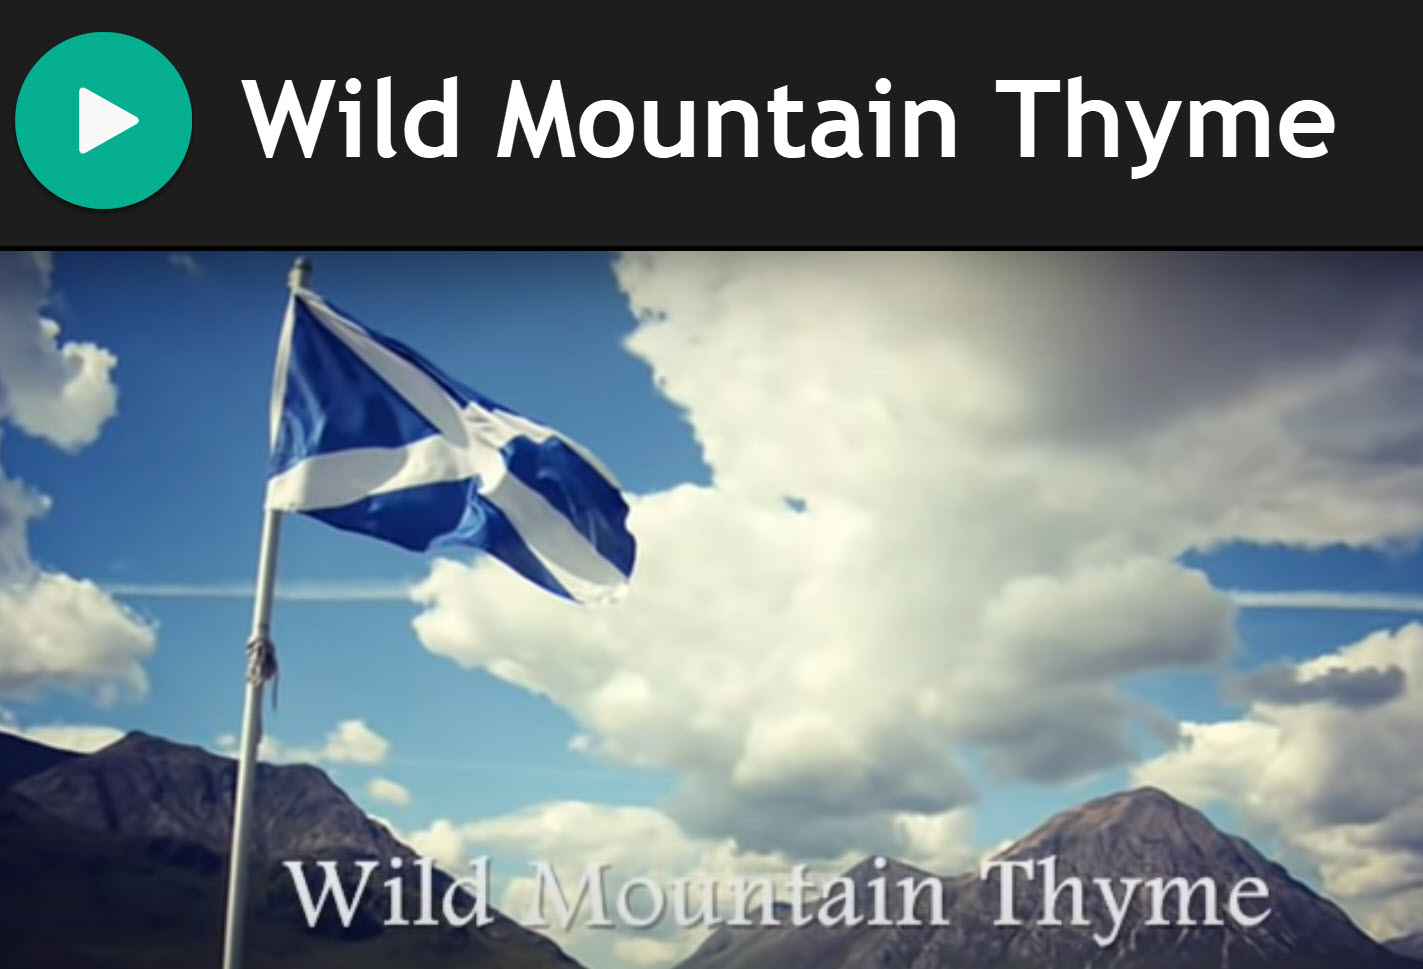 Wild Mountain Thyme by Sarah Calderwood for Smallpipes